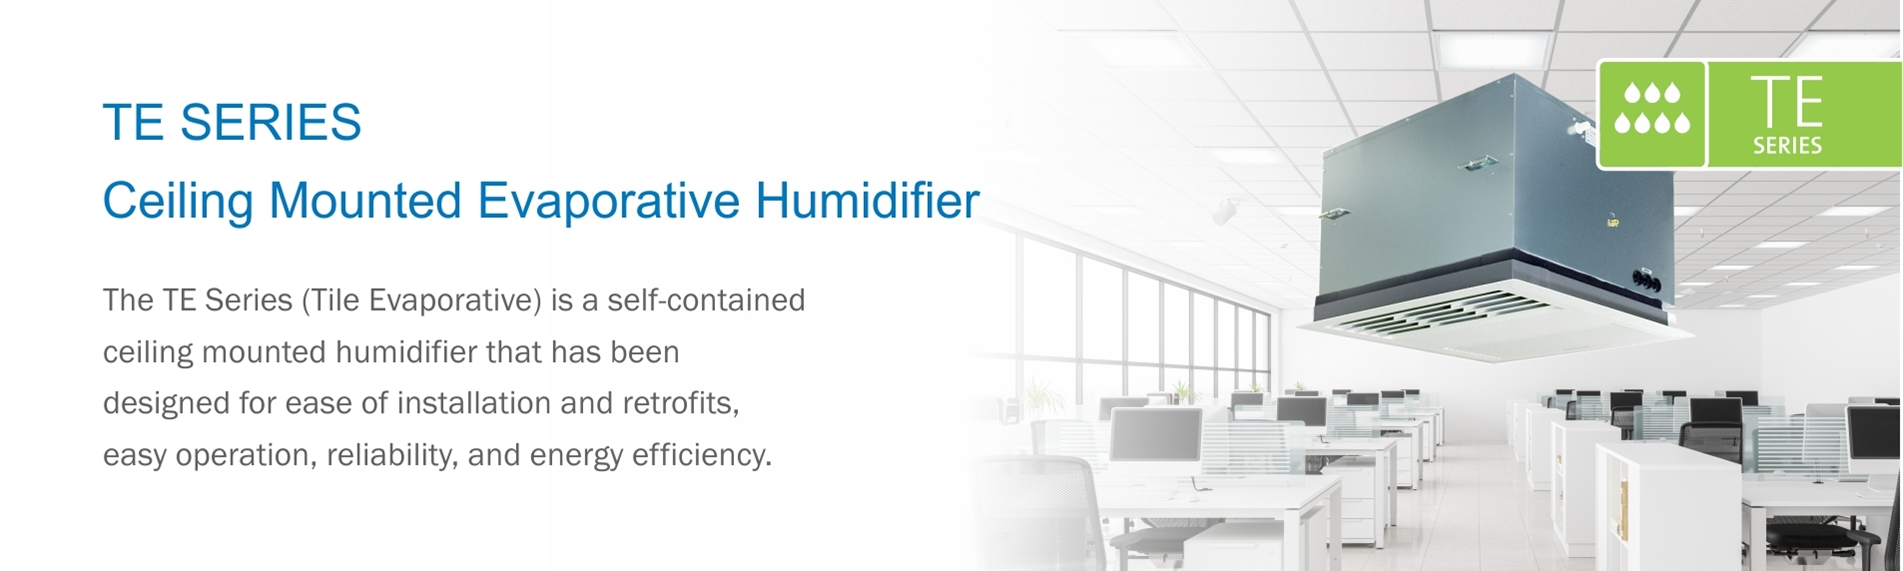 TE Evaporative Humidifier by Condair